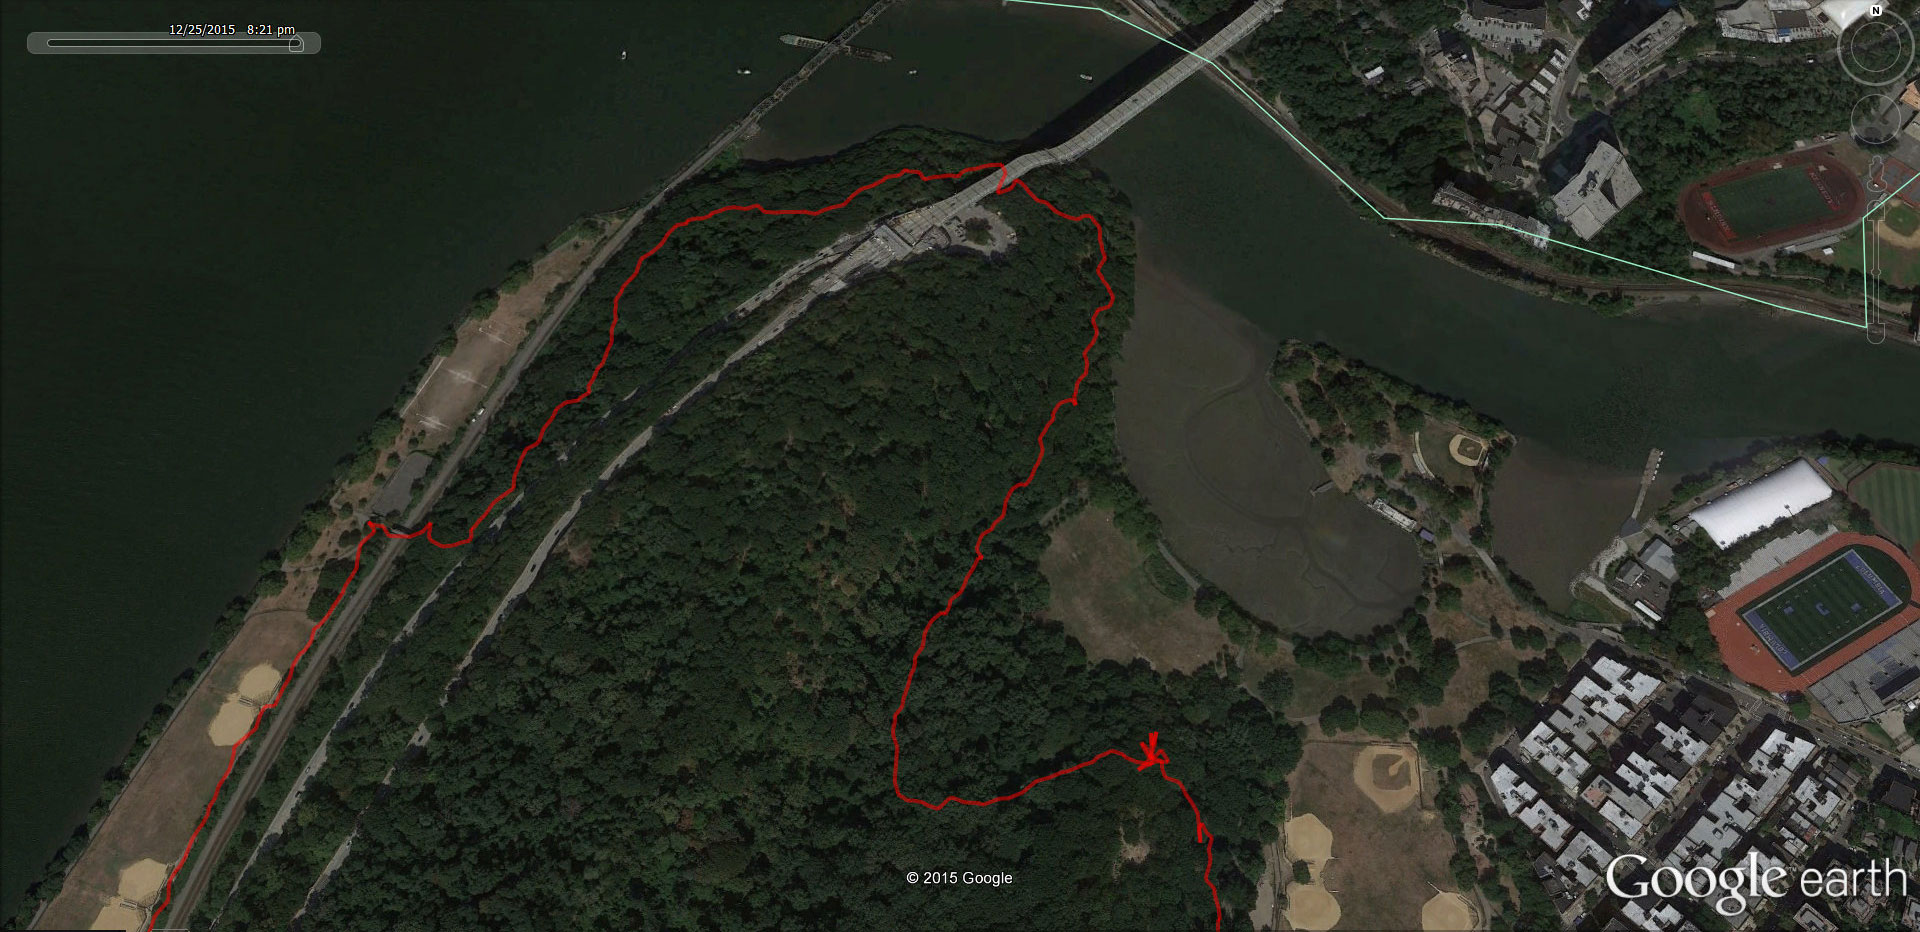 Our route through Inwood Hill Park (pictures below) including a brief pause at the first bend.